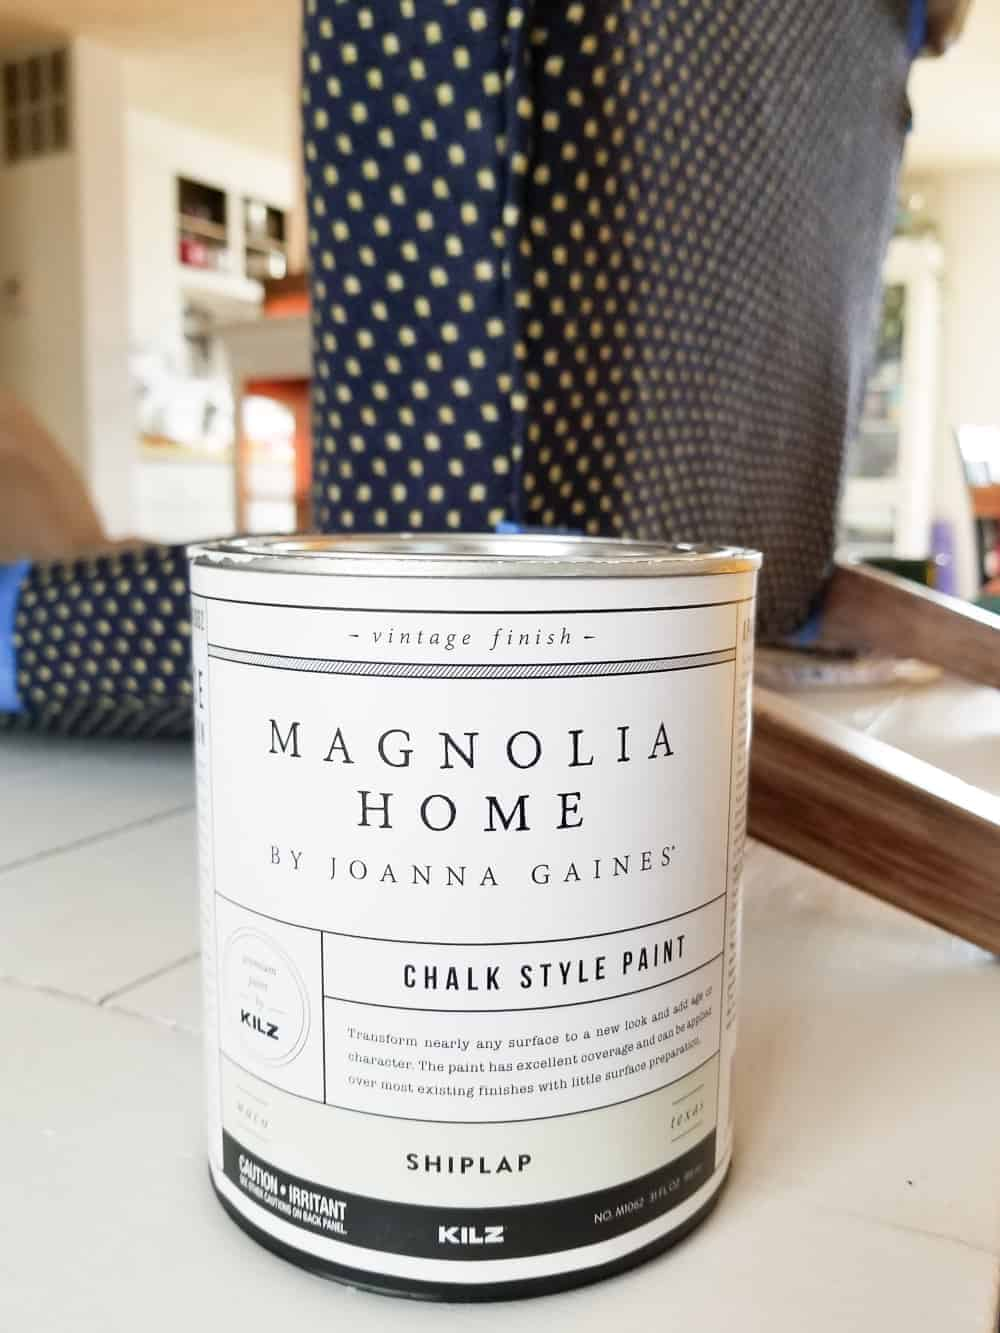 Can of Magnolia Home Chalk Style Paint in Shiplap